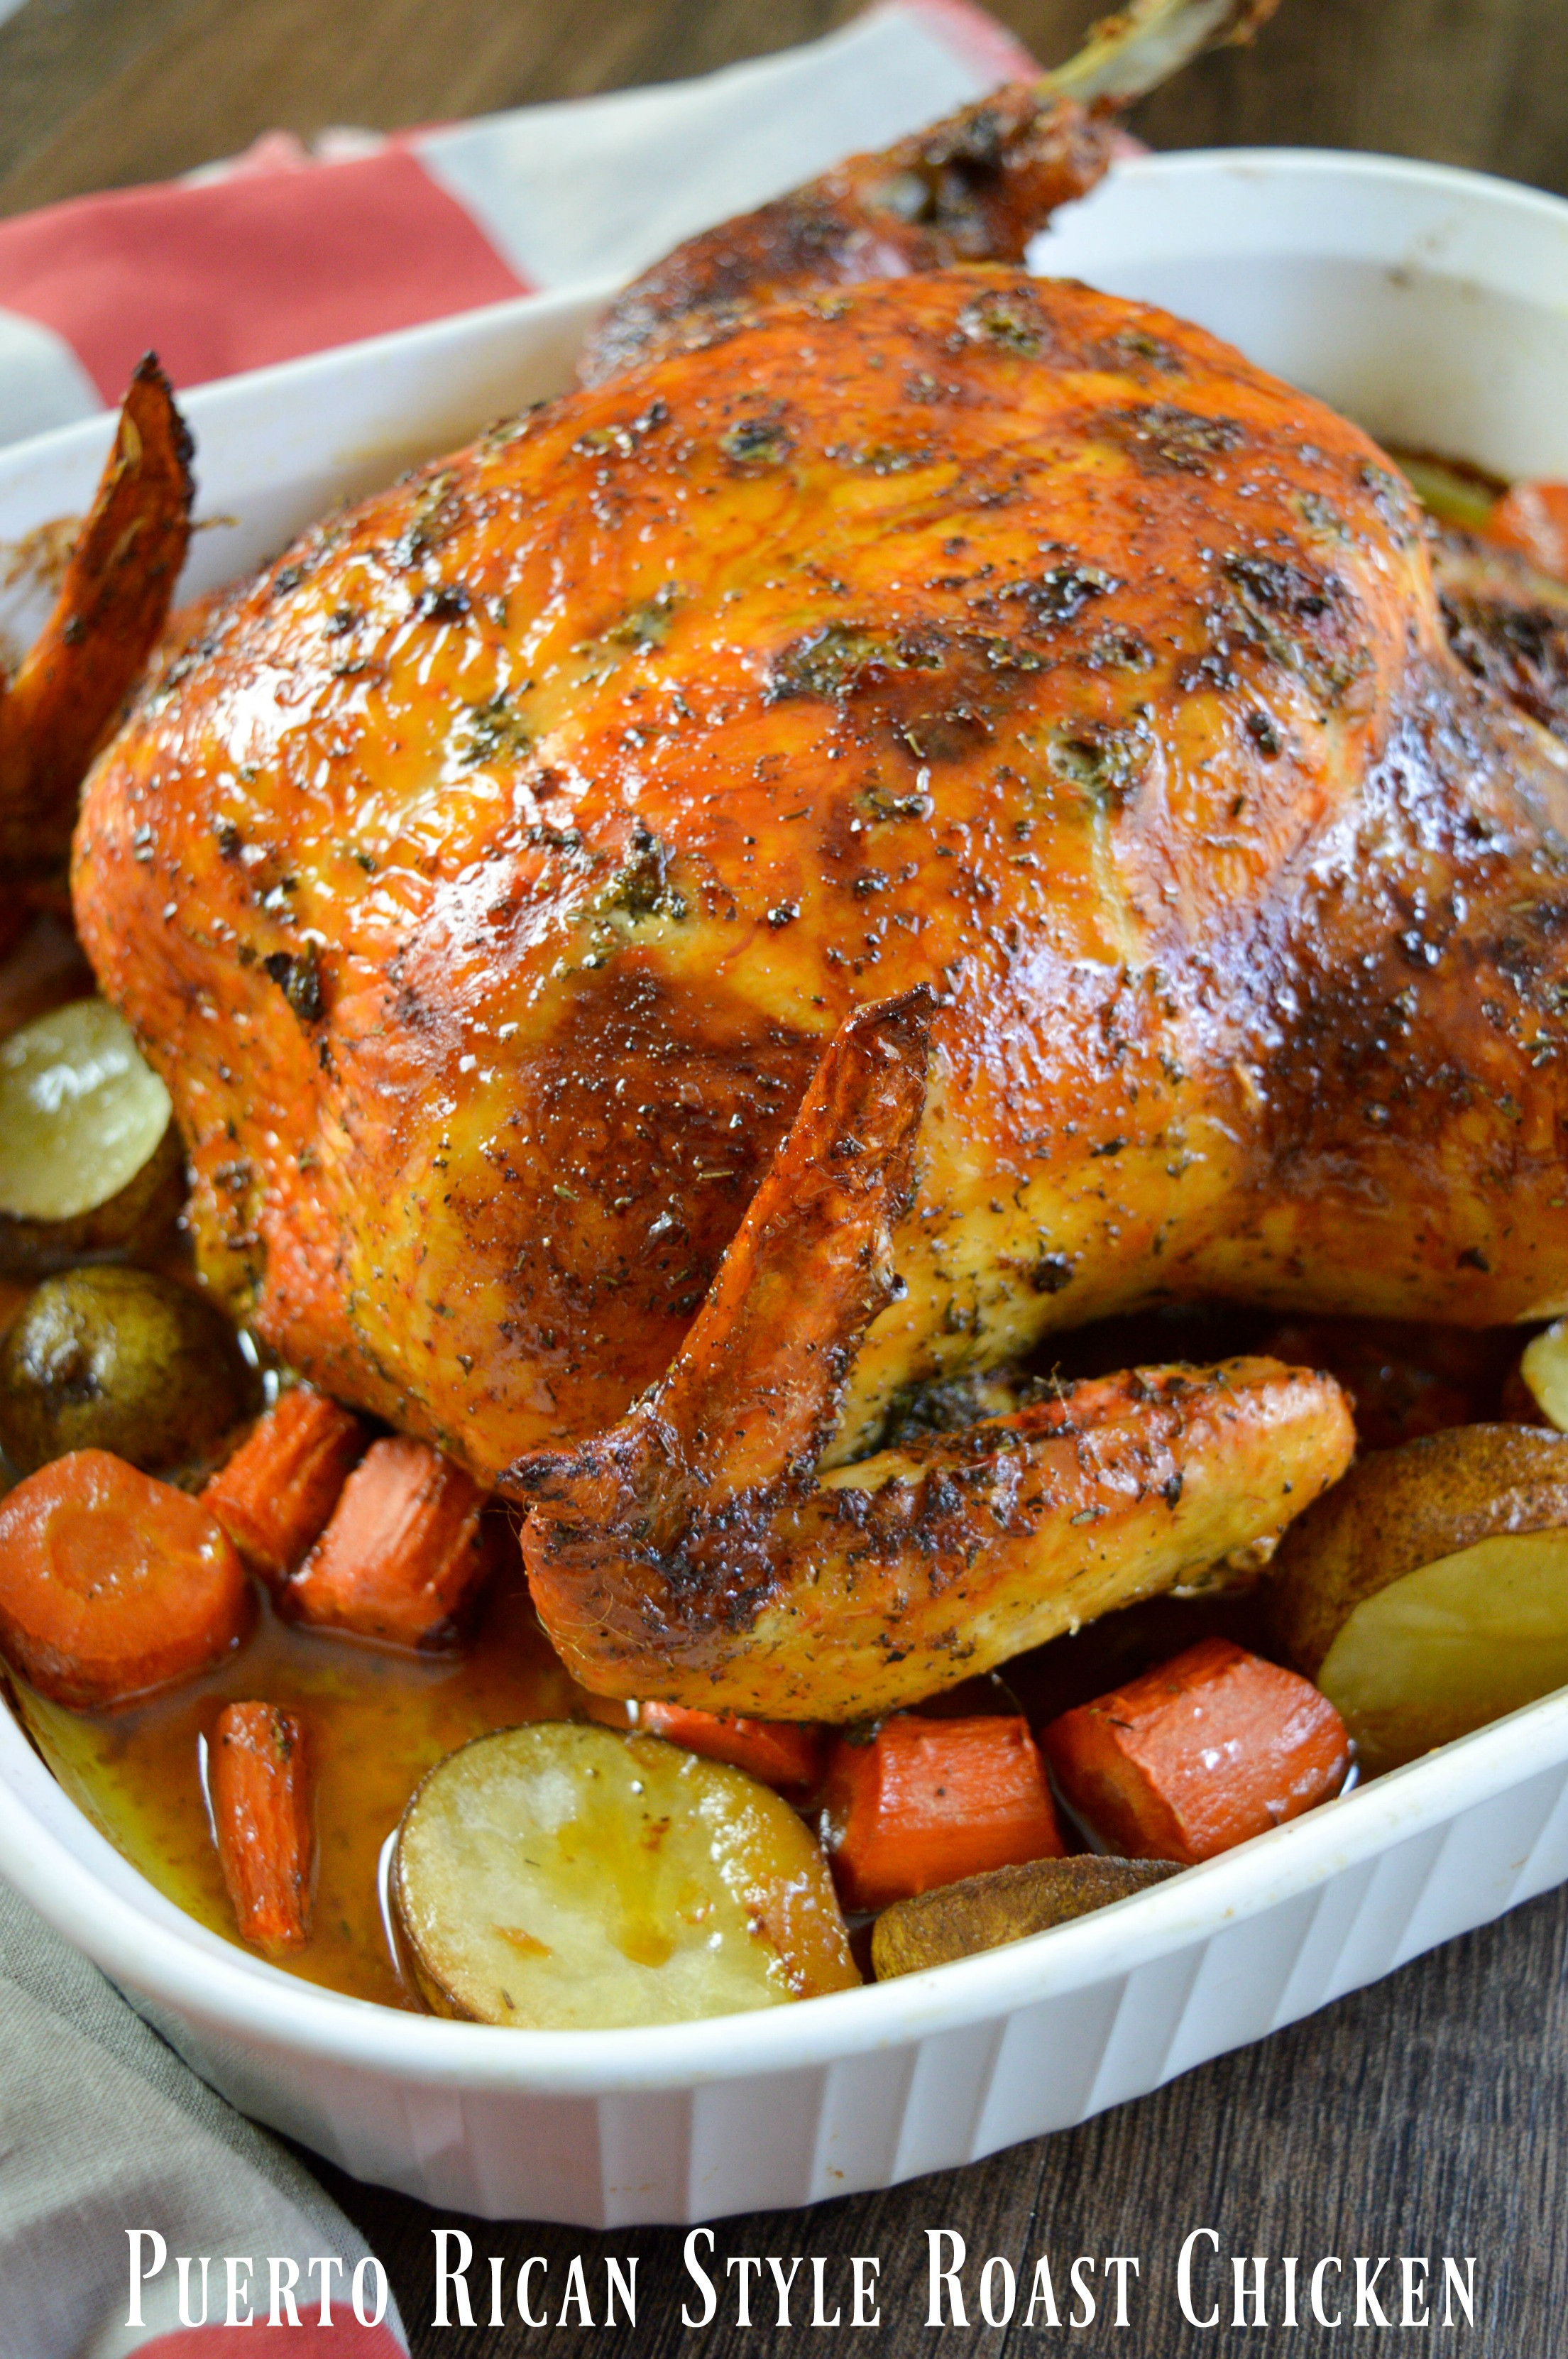 Bake Whole Chicken  Puerto Rican Style Whole Roasted Chicken Recipe